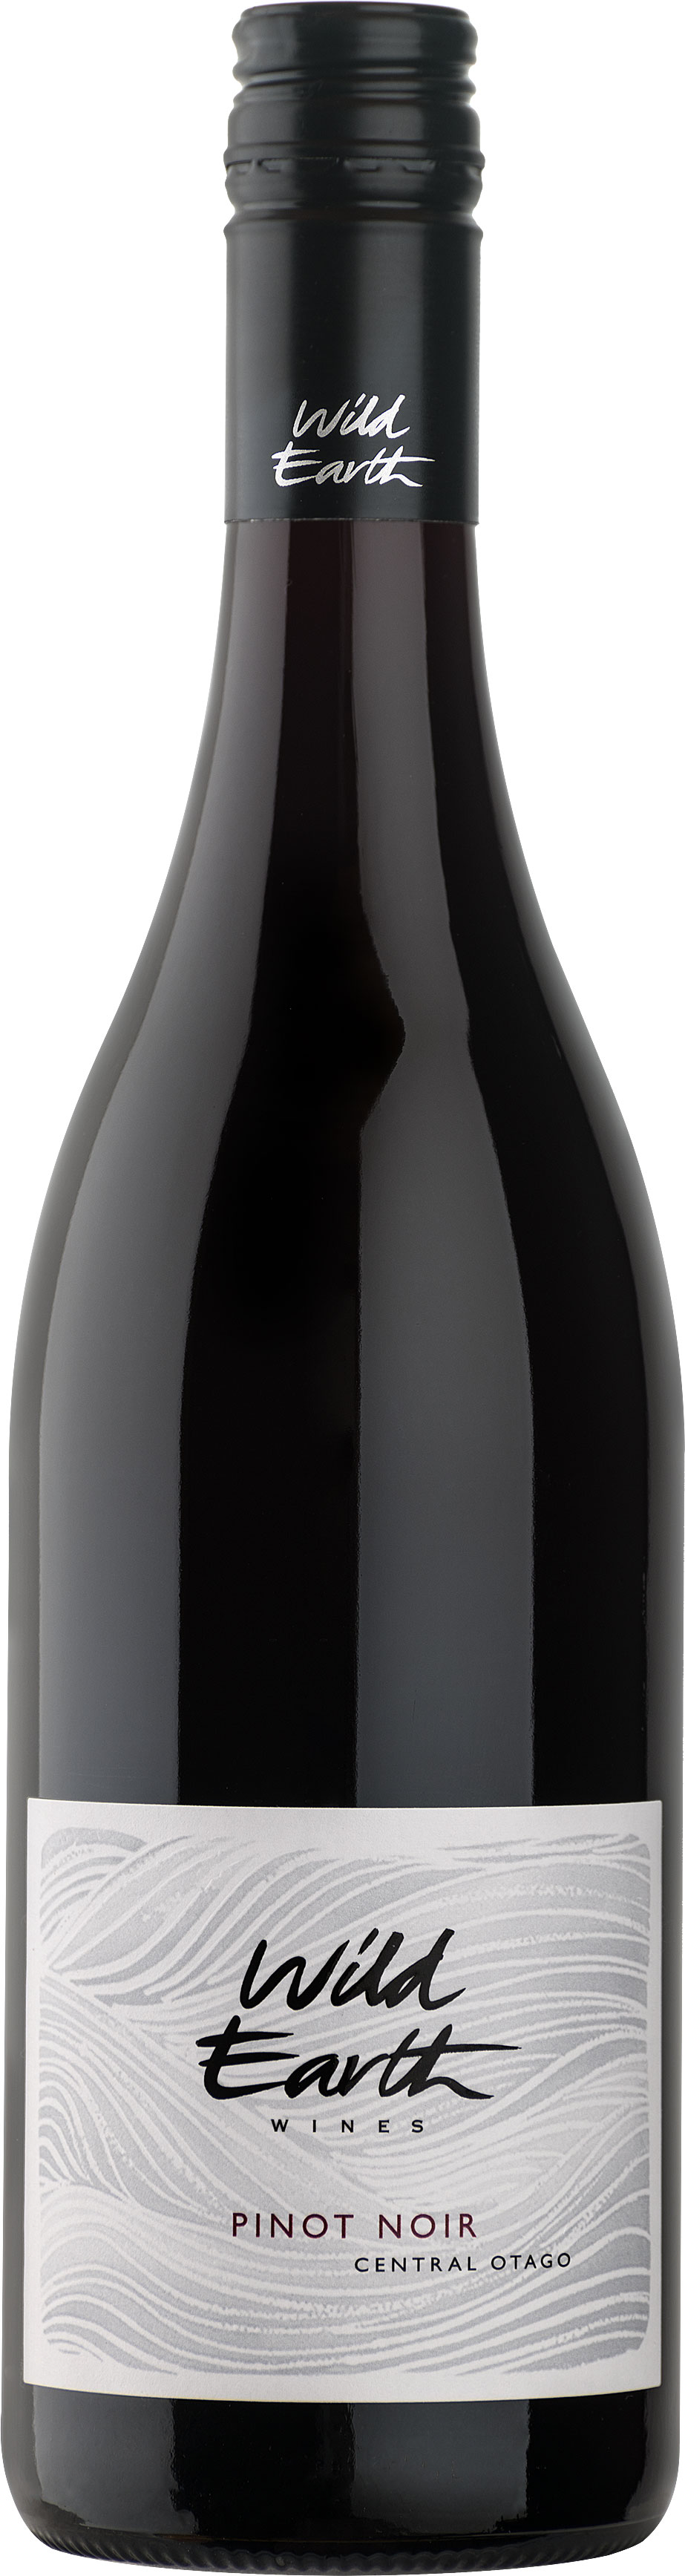 Wild Earth - Pinot Noir 2018 75cl Bottle